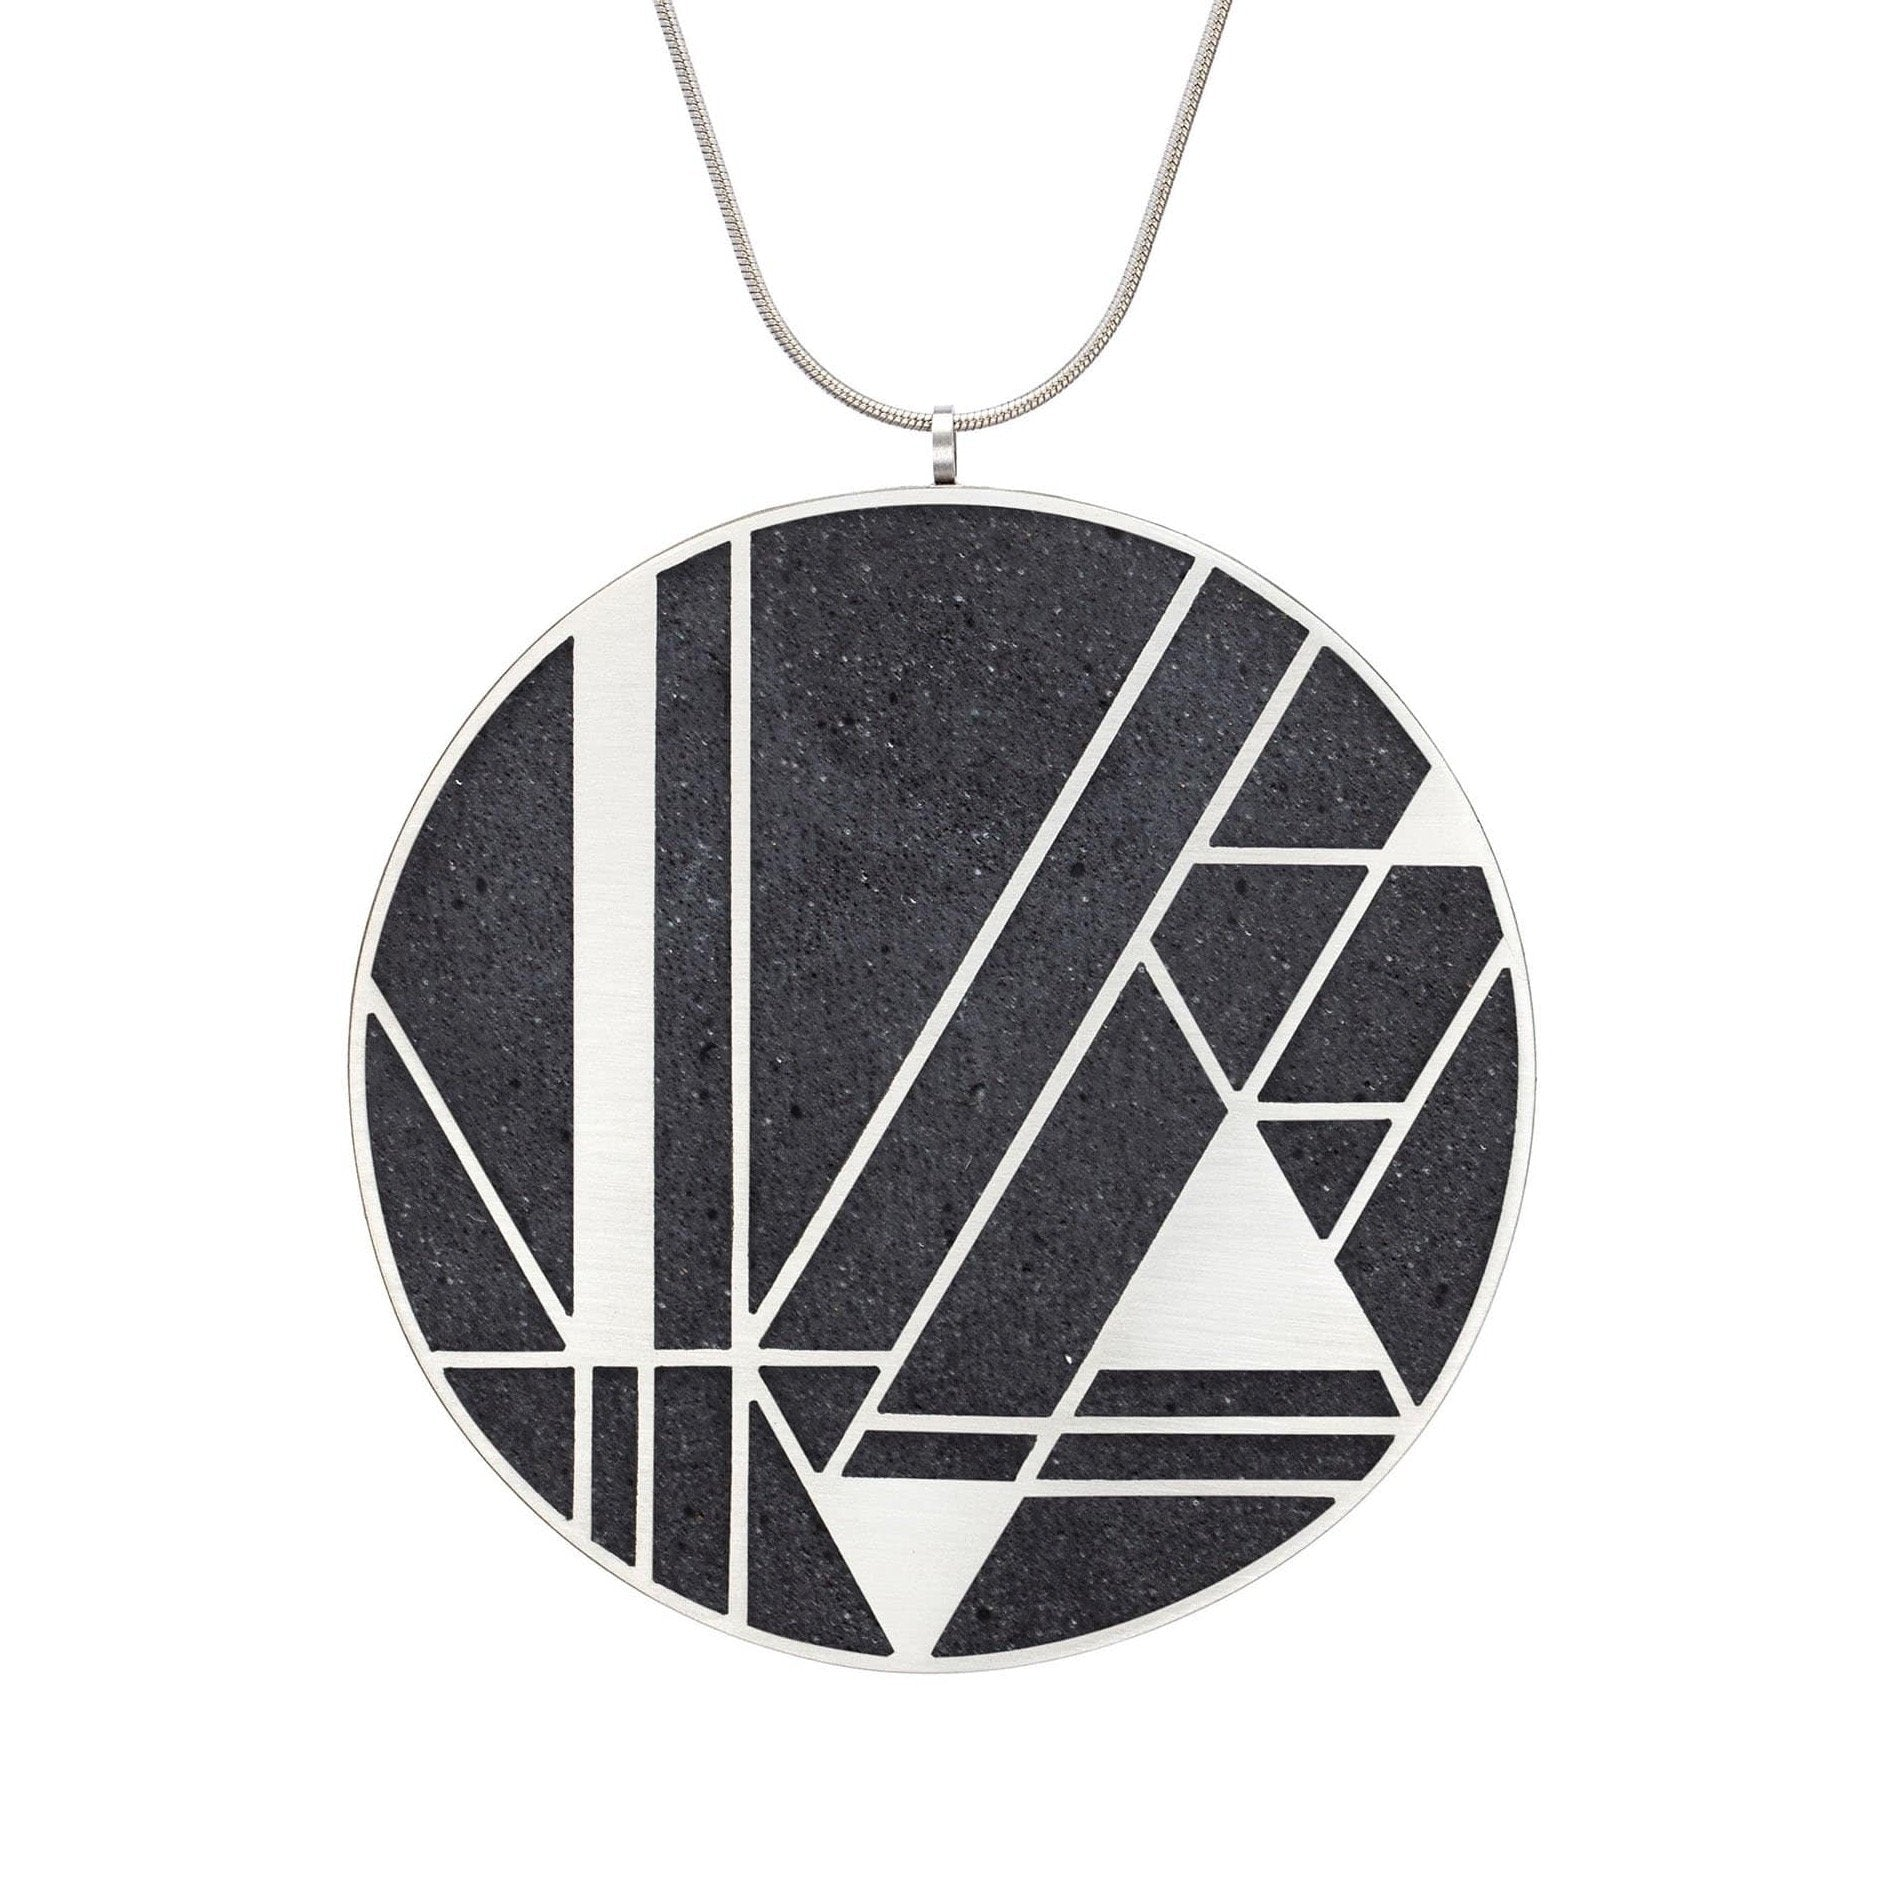 "Konzuk Necklaces K - Black / 28"" Imperial Hotel Large Concrete Necklace"